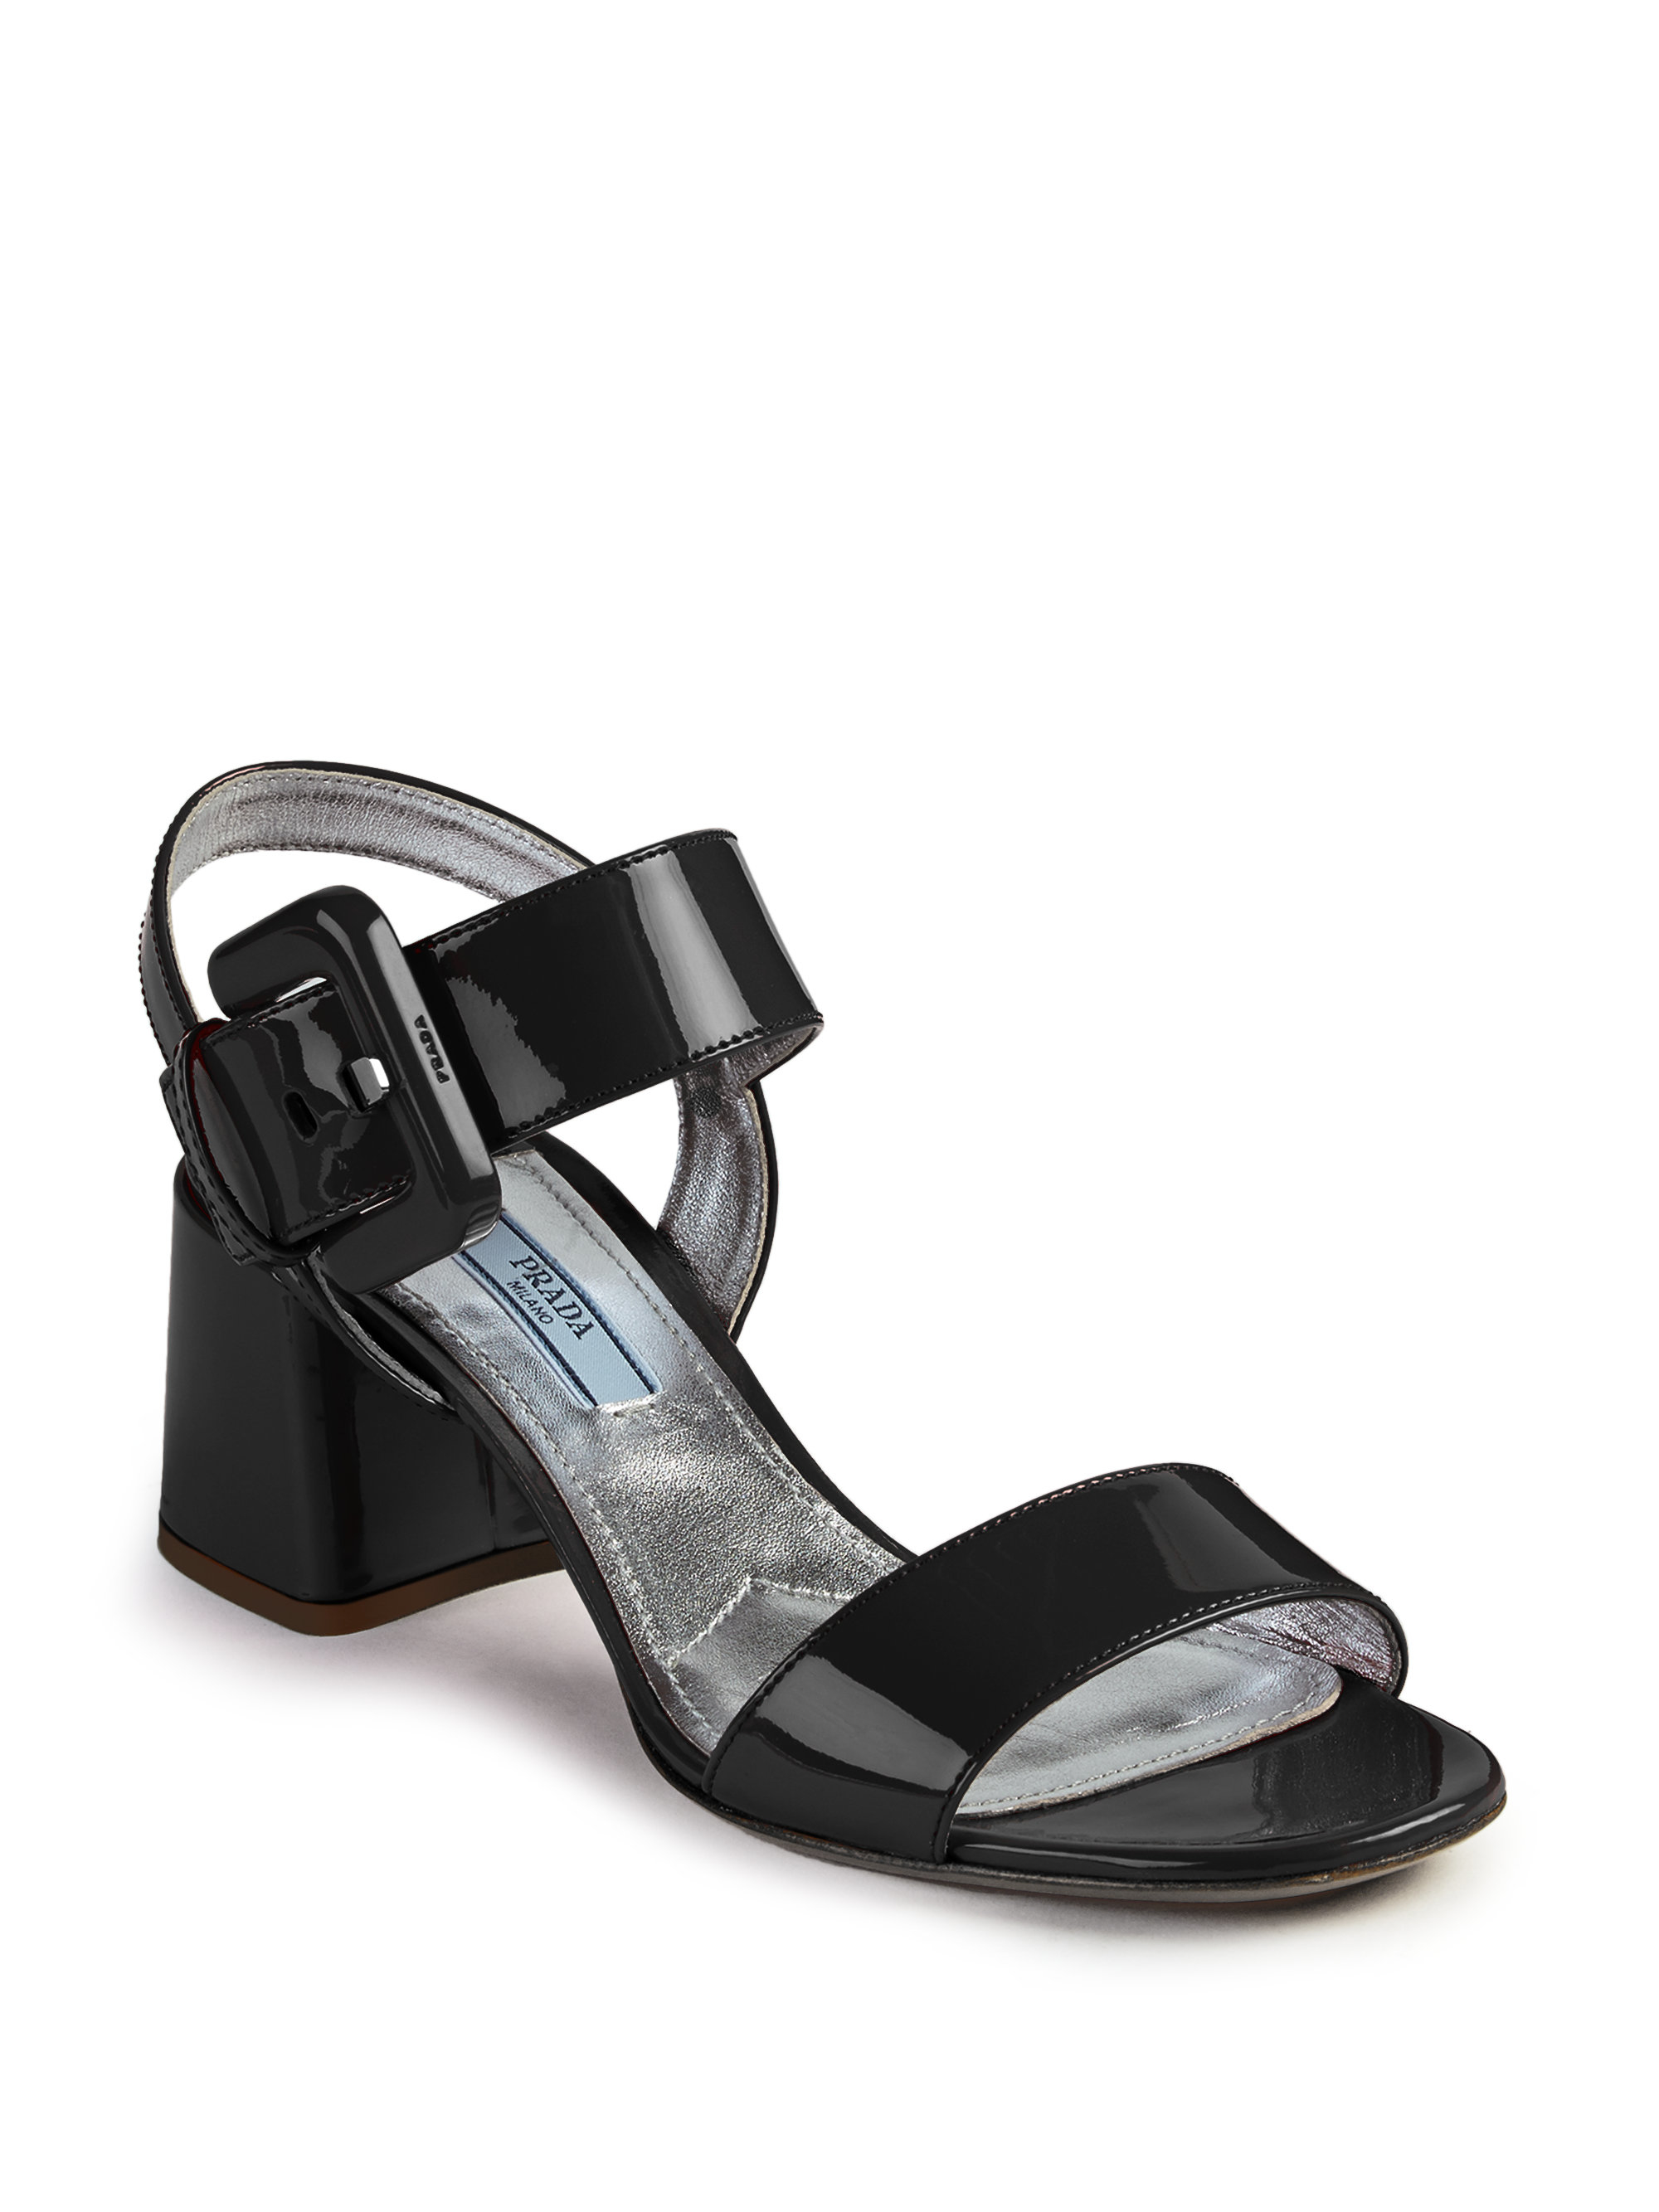 Find great deals on eBay for black patent leather sandals. Shop with confidence.